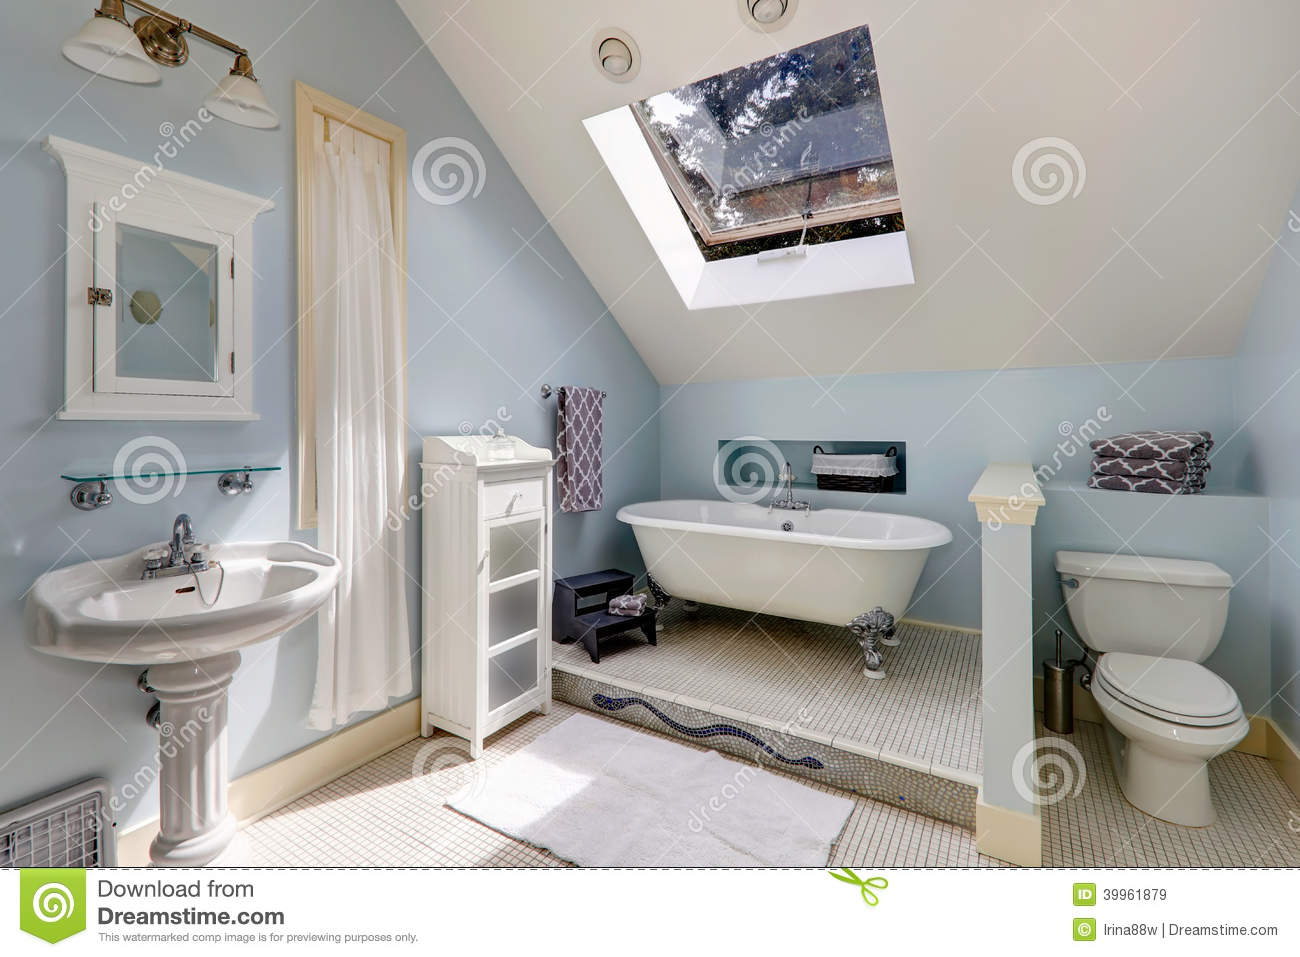 salle de bains de velux avec la baignoire antique image. Black Bedroom Furniture Sets. Home Design Ideas